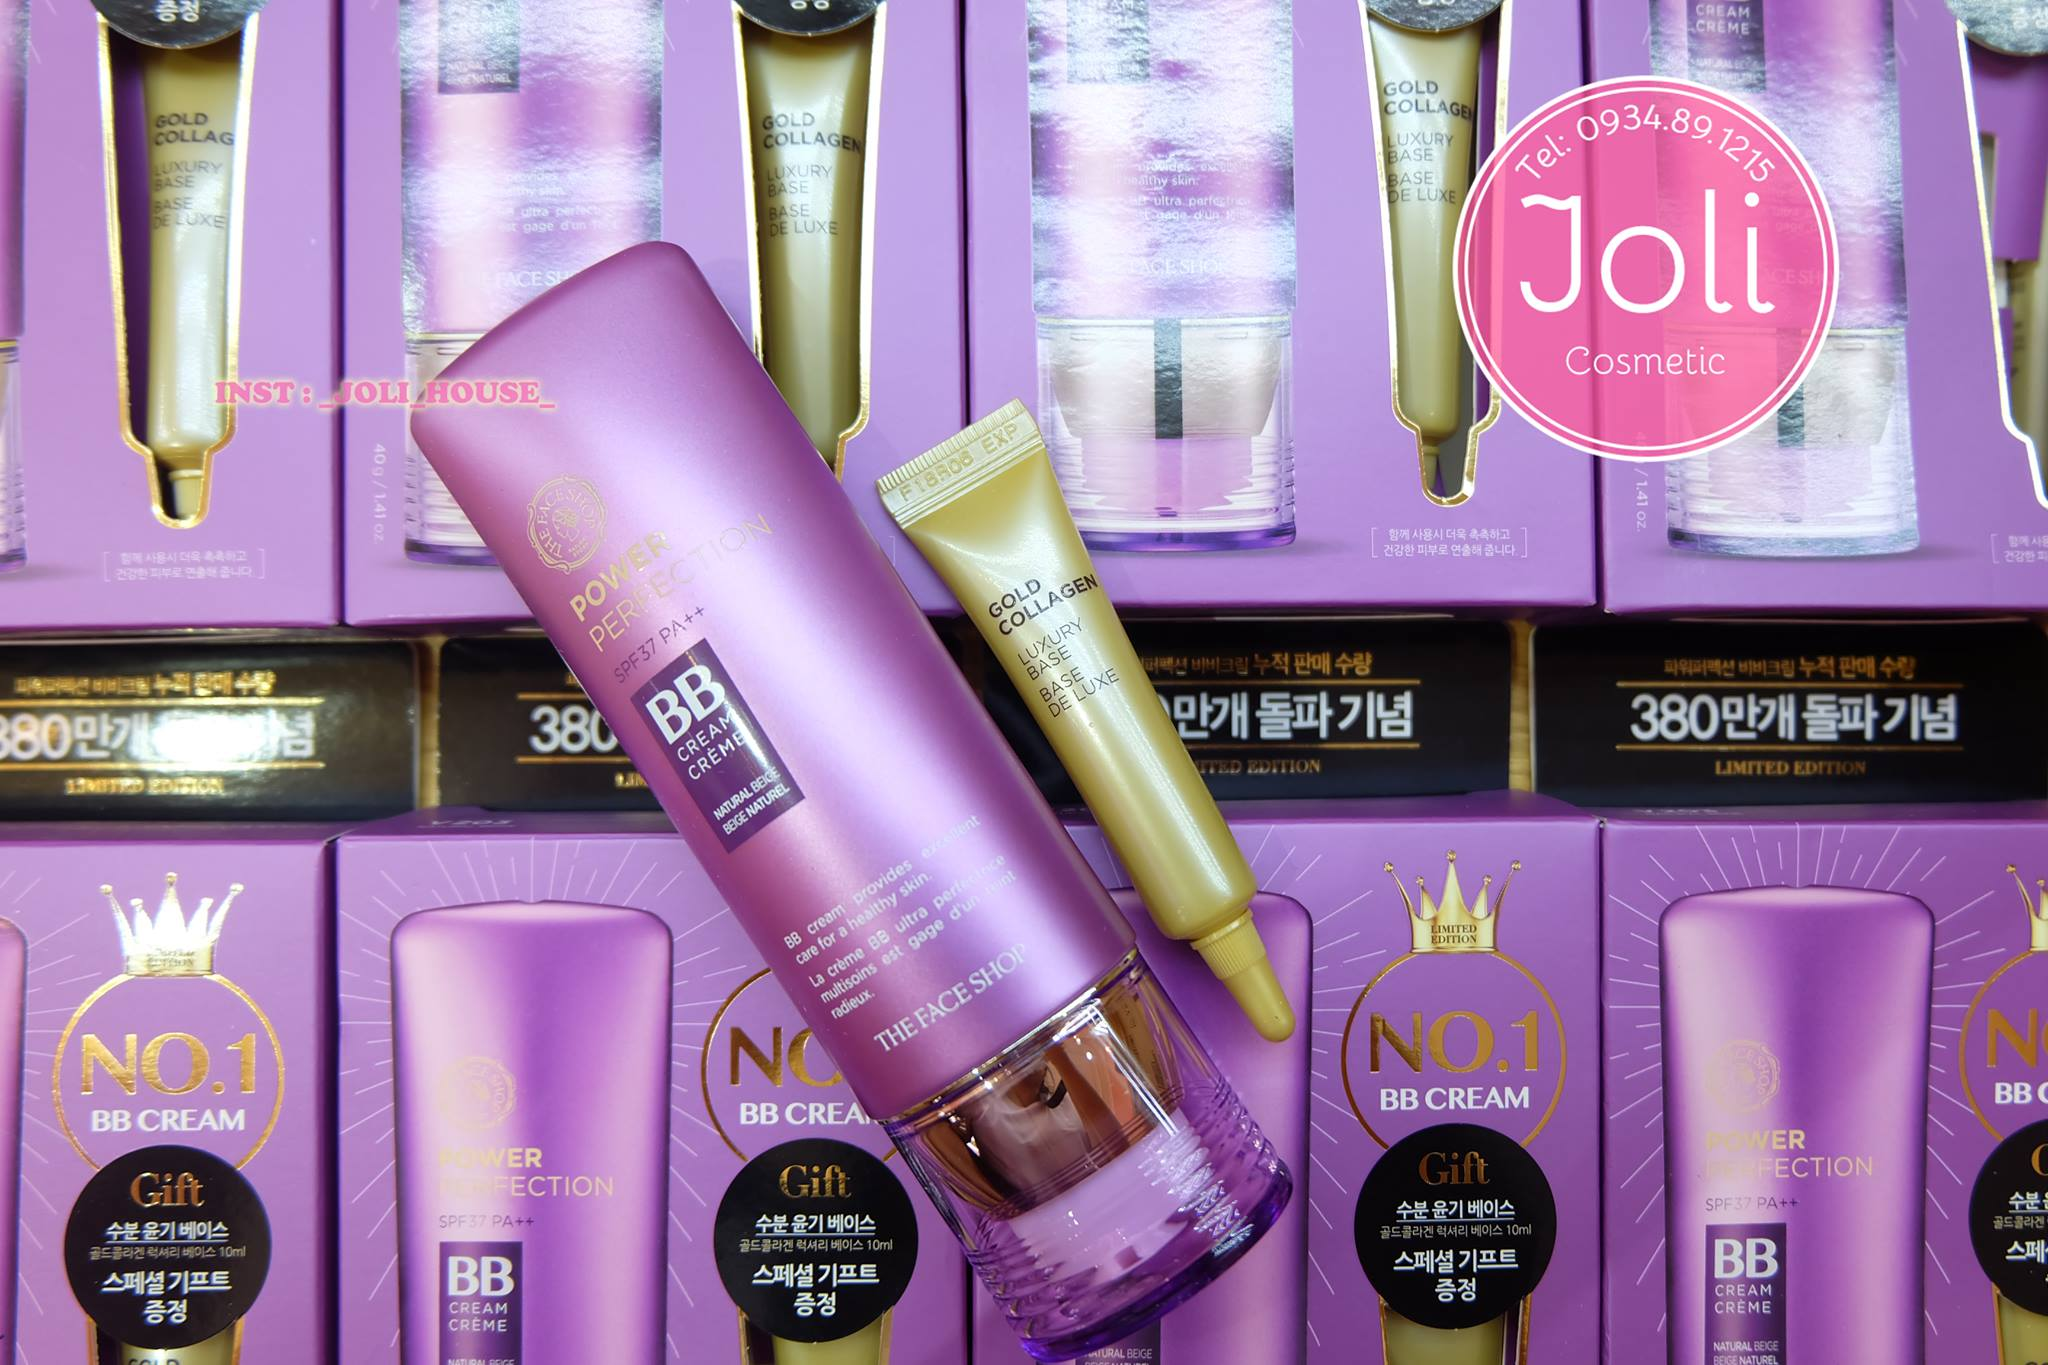 BỘ KEM NỀN + KEM LÓT POWER PERFECTION BB CREAM SET THE FACE SHOP